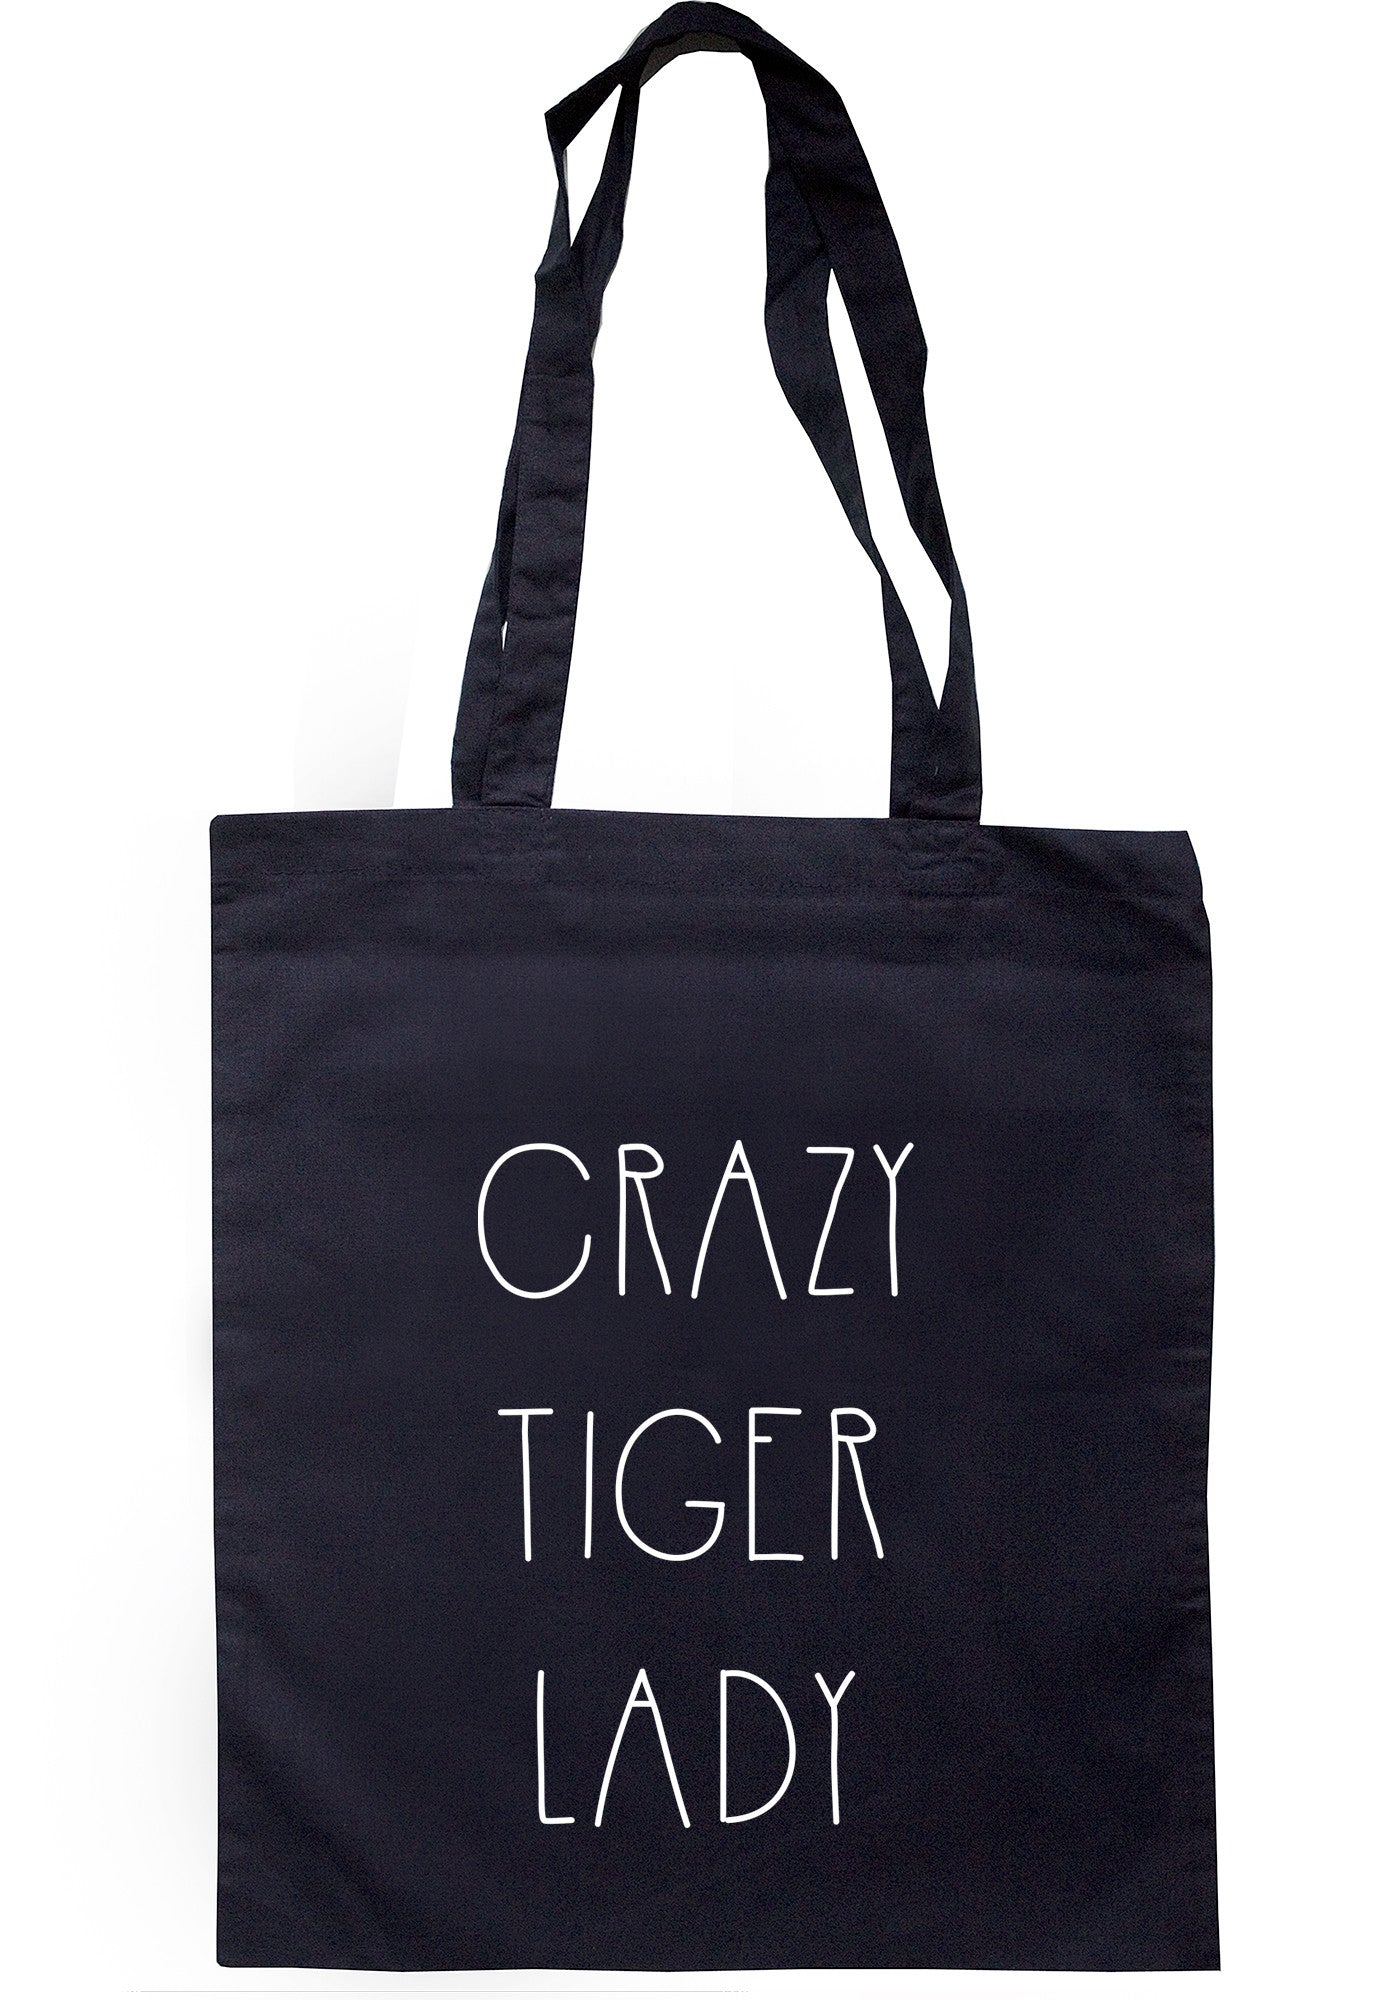 Crazy Tiger Lady Tote Bag TB0383 - Illustrated Identity Ltd.